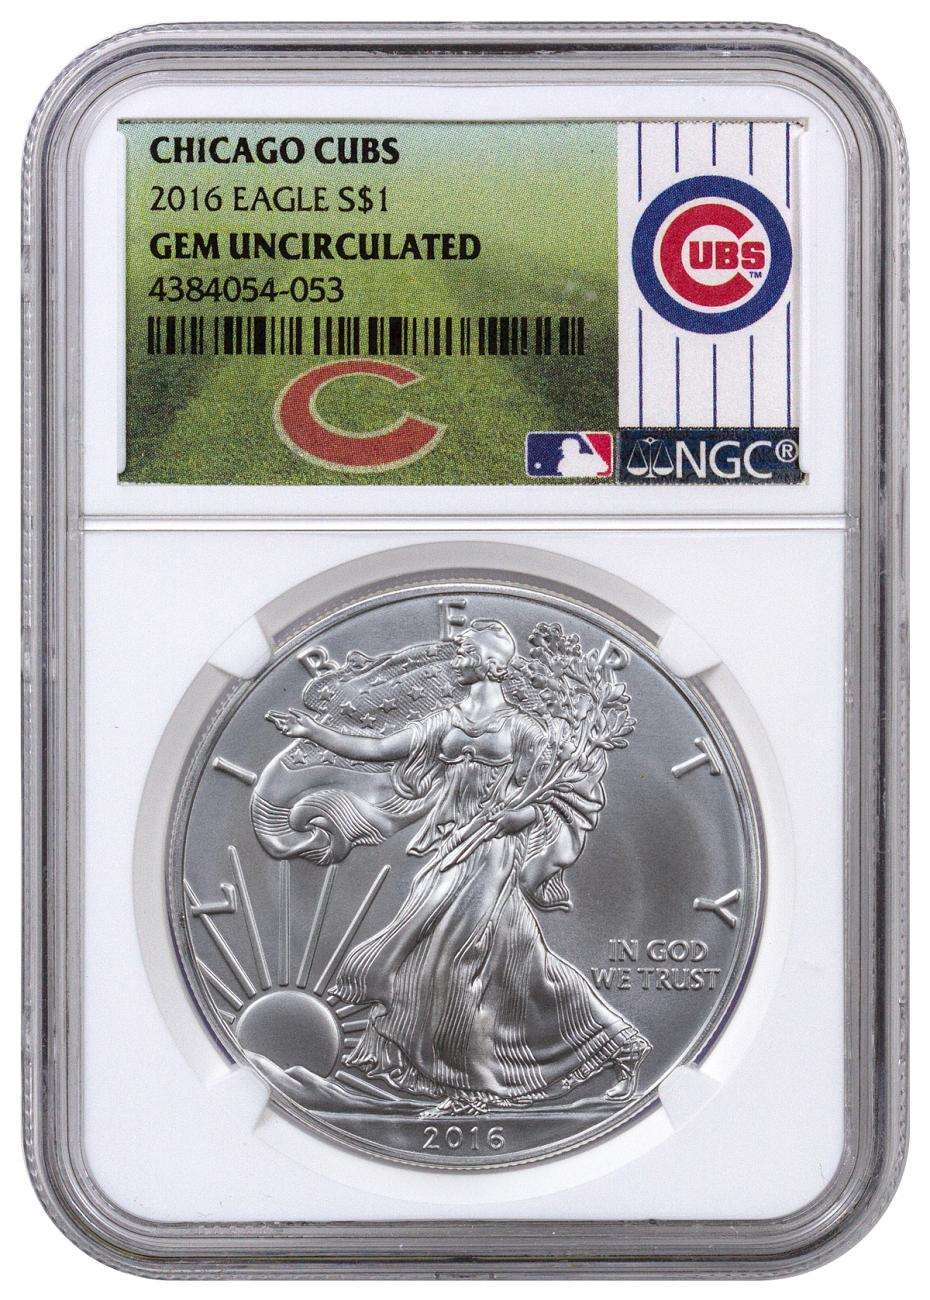 2016 American Silver Eagle Ngc Gem Bu Chicago Cubs Label